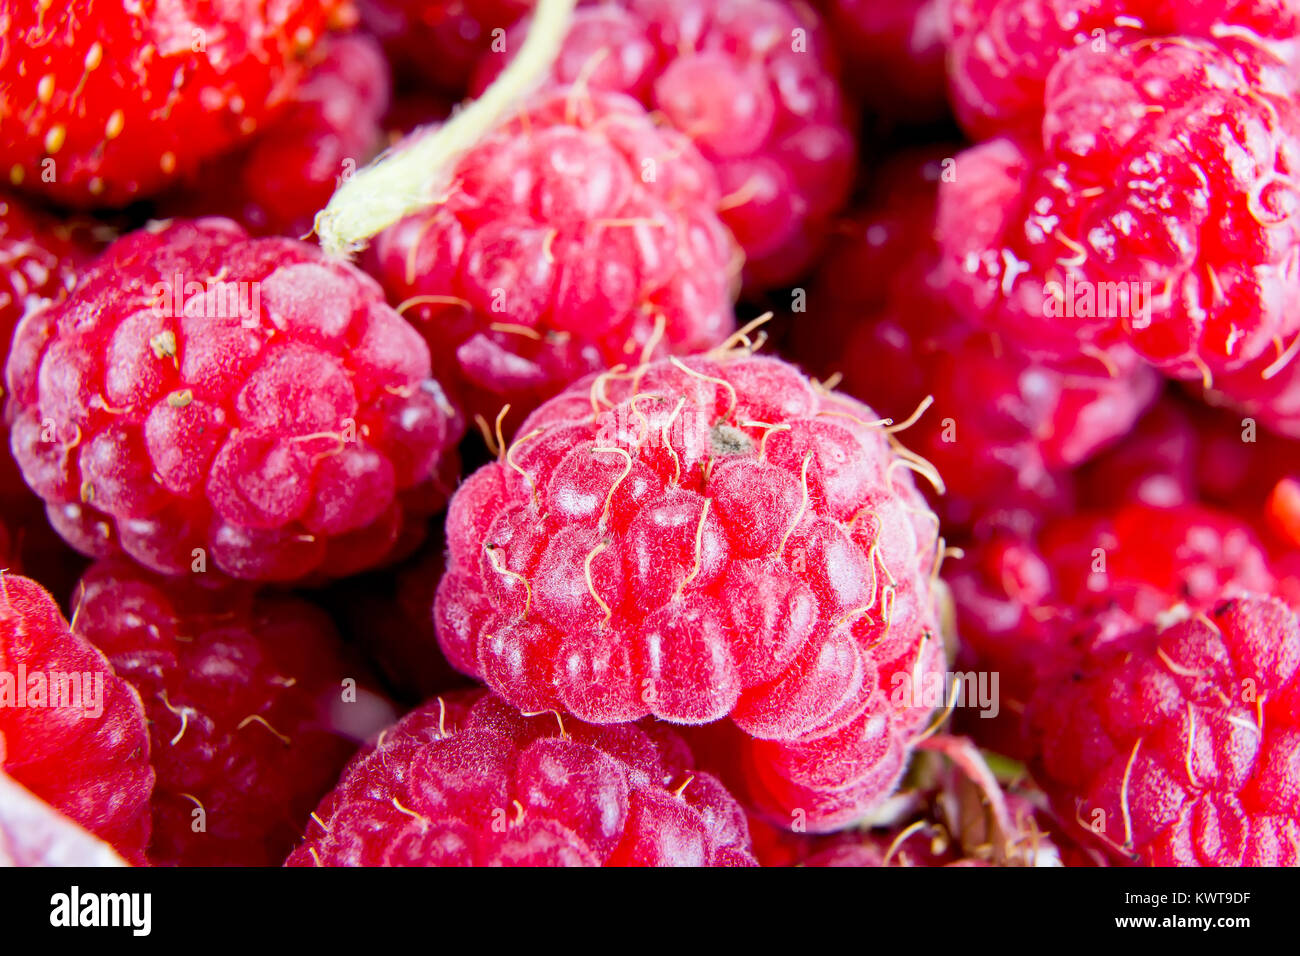 A lot of ripe berries. Fruit background - Stock Image